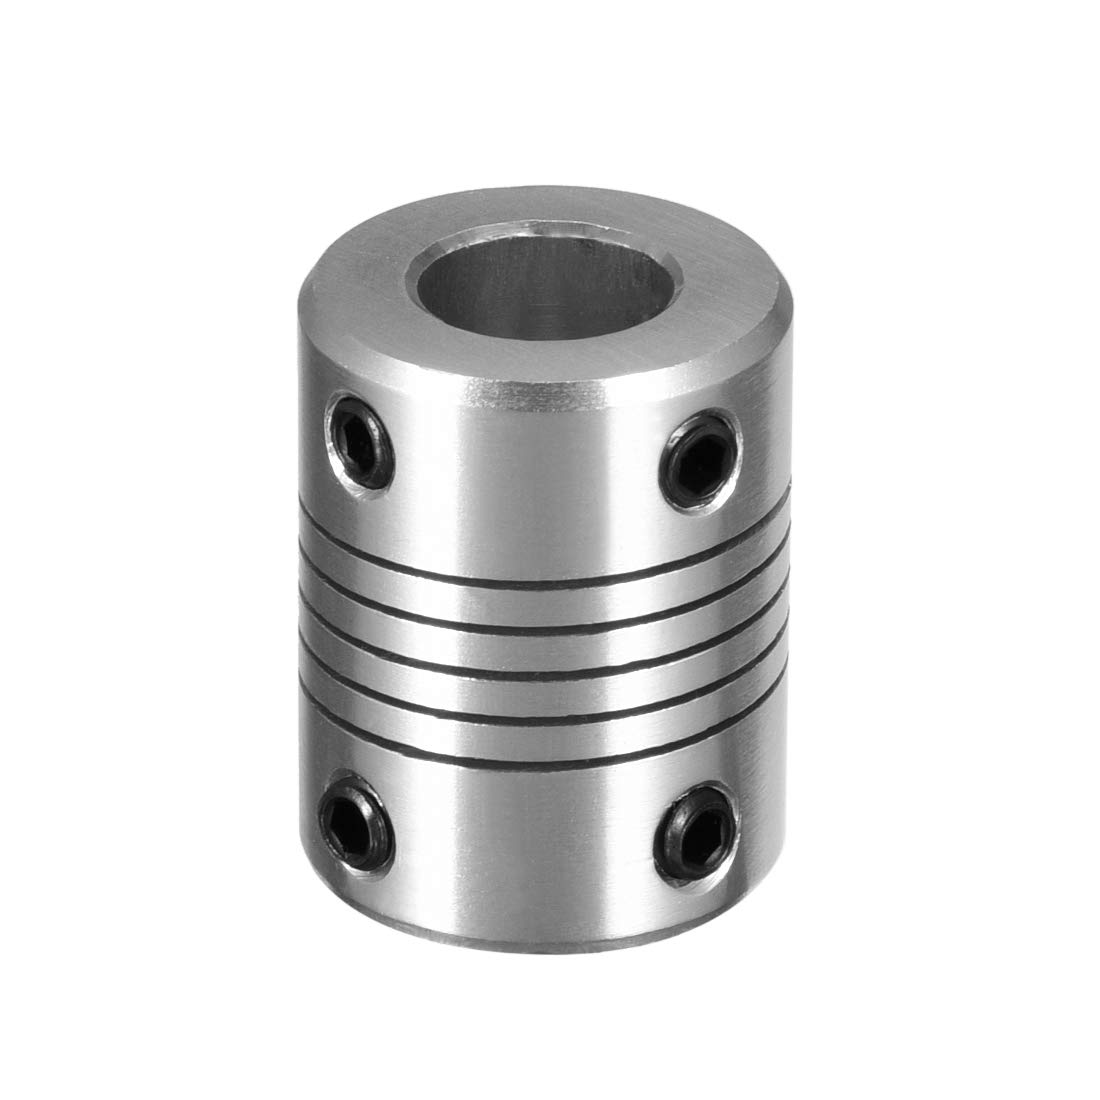 uxcell 5mm to 6.35mm Aluminum Alloy Shaft Coupling Flexible Coupler Motor Connector Joint L25xD19 Silver